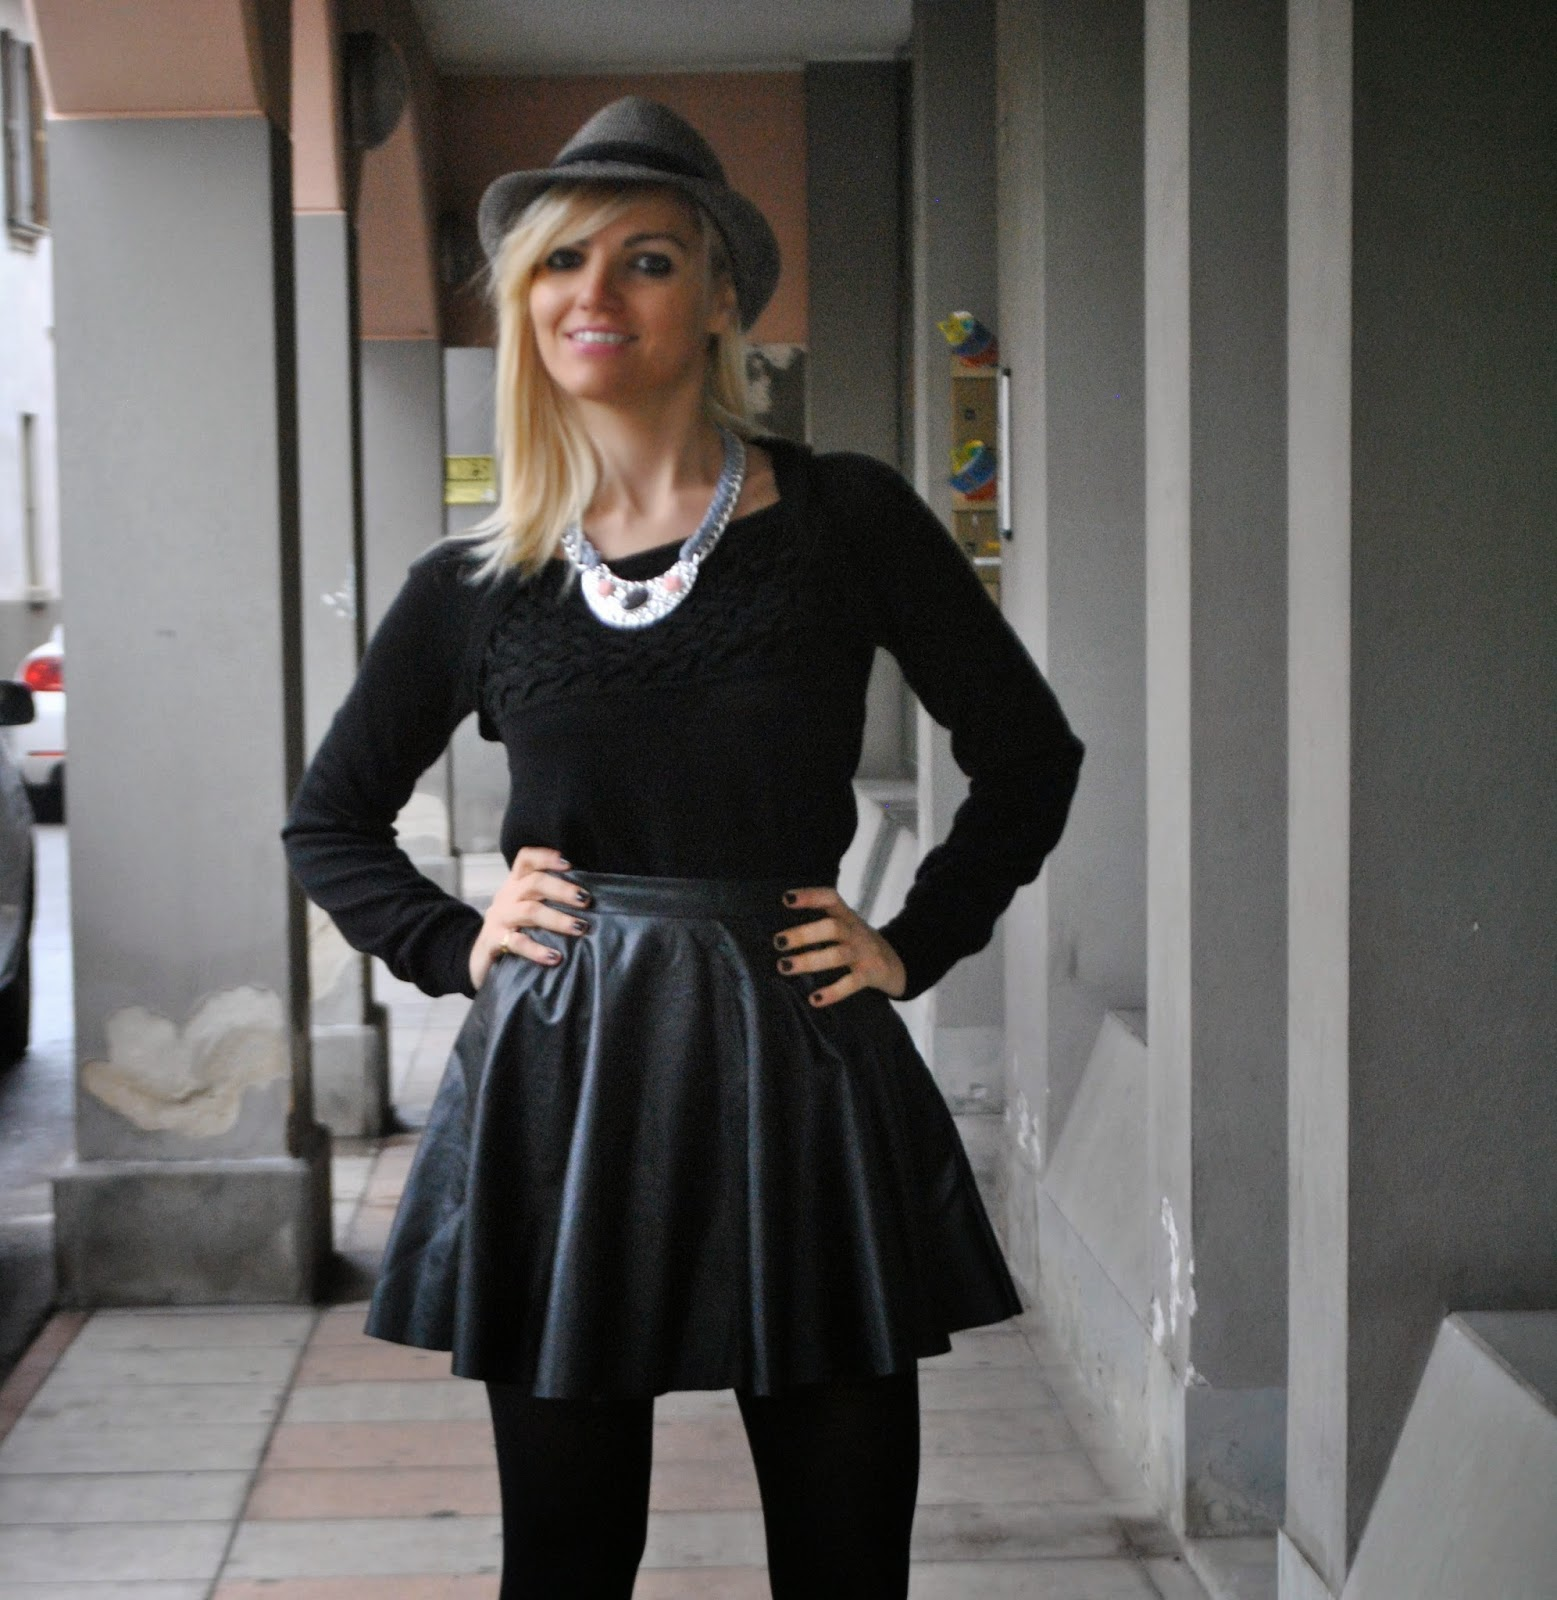 outfit nero total black outfit outfit gonna di pelle nera outfit black leather skirt outfit maglione nero marella collana majique in catena majique london necklace majique cappello grigio pimkie abbinamento leggings e gonna come abbinare la gonna in pelle come abbinare i leggings outfit novembre 2014 outfit cappello grigio outfit mariafelicia magno mariafelicia magno fashion blogger fashion blog italiani fashion blogger italiane fashion blogger bionde fashion blogger milano ragazze bionde italian girl blondie blonde hair blonde girl colorblock by felym